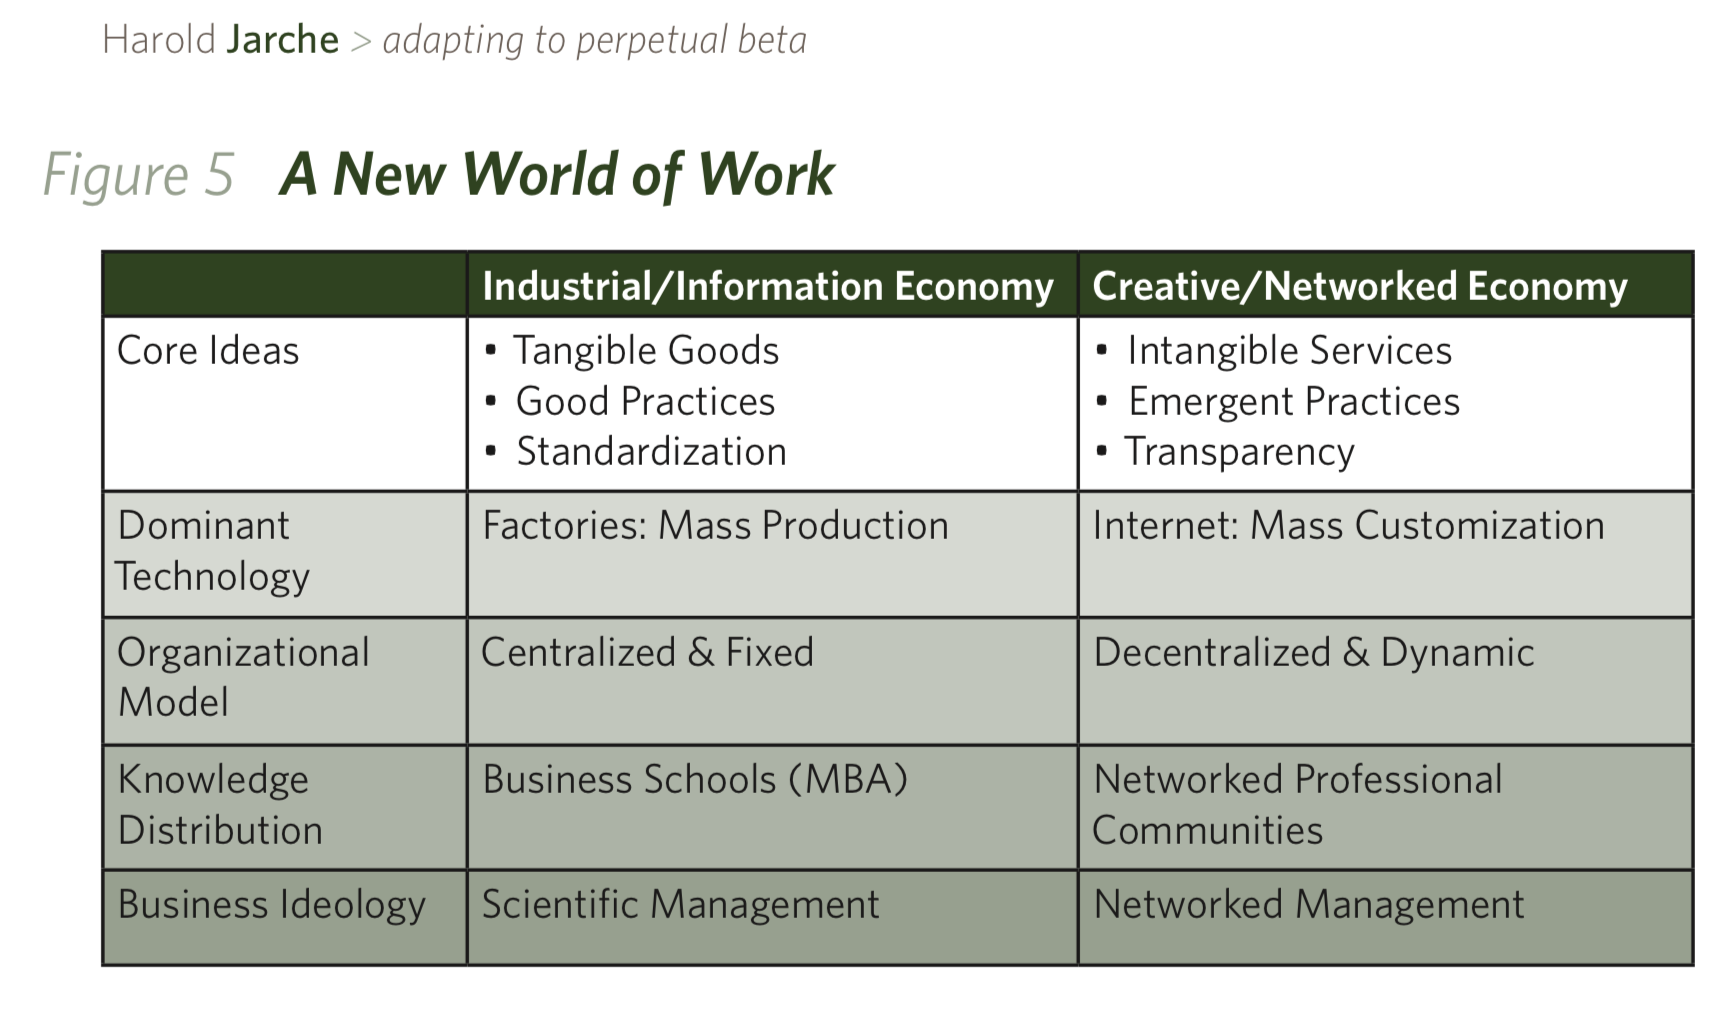 business schools are a technology of the last century